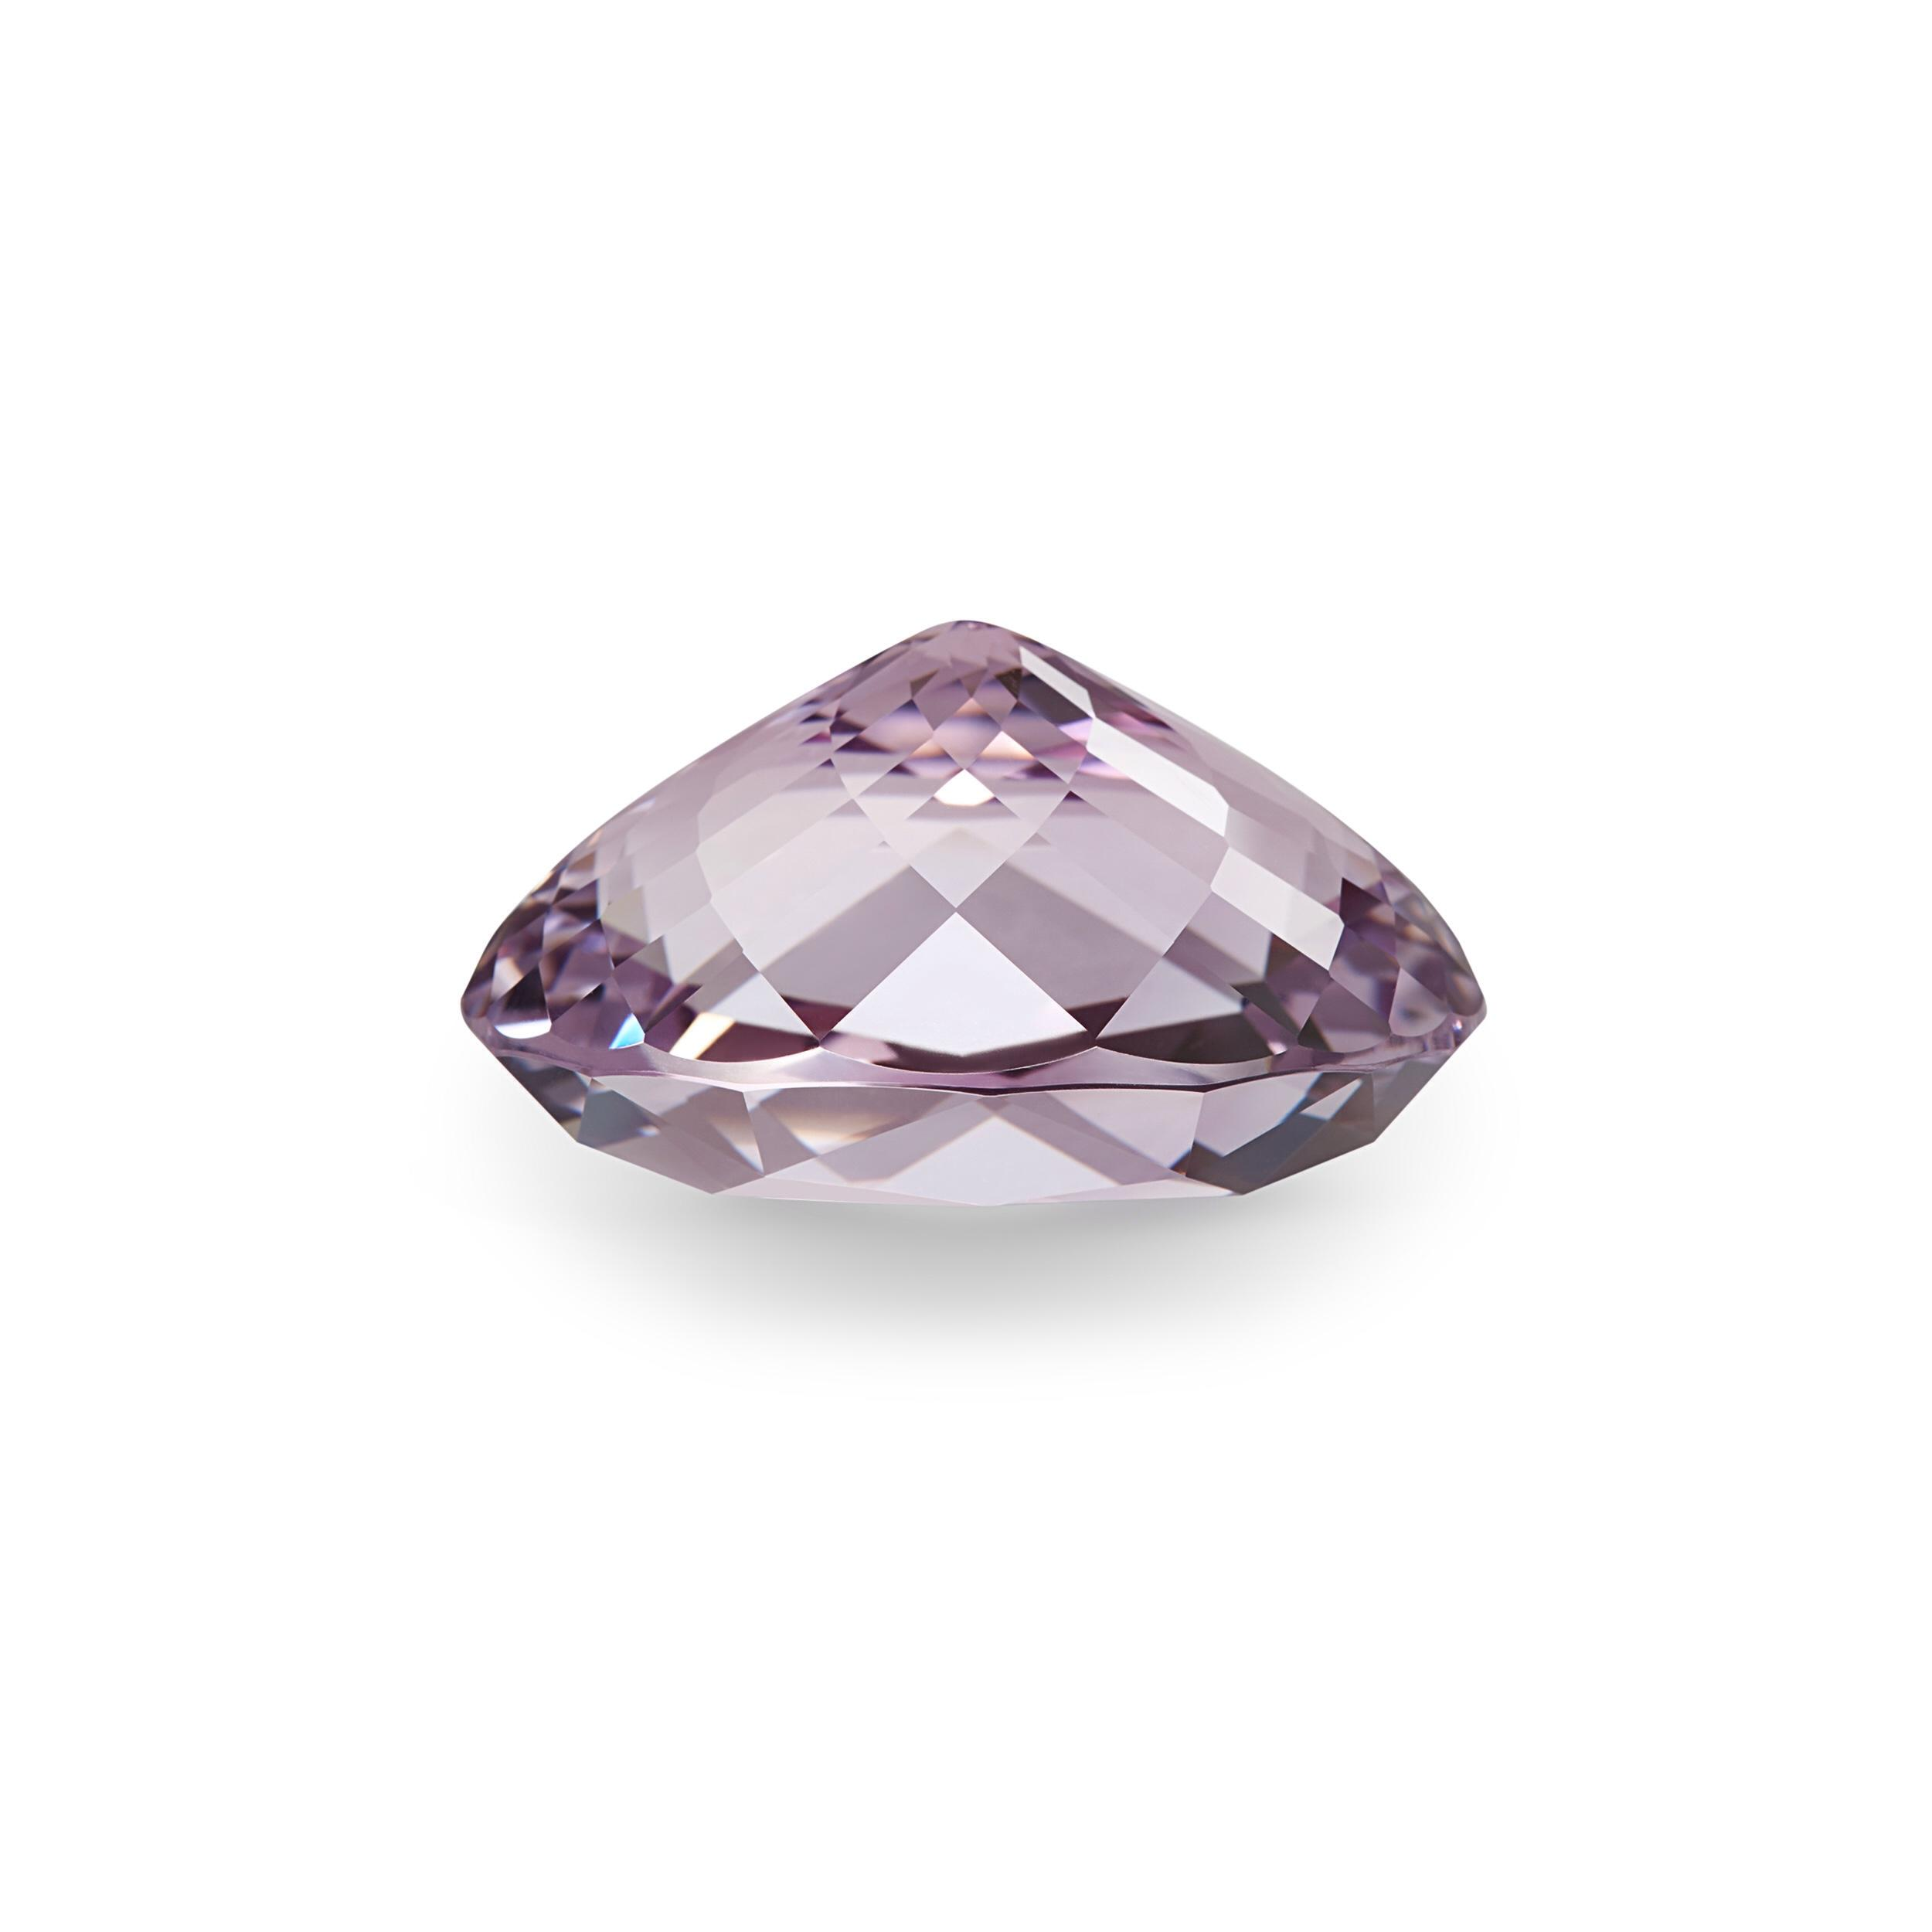 194.9ct Pink Amethyst unheated treatment